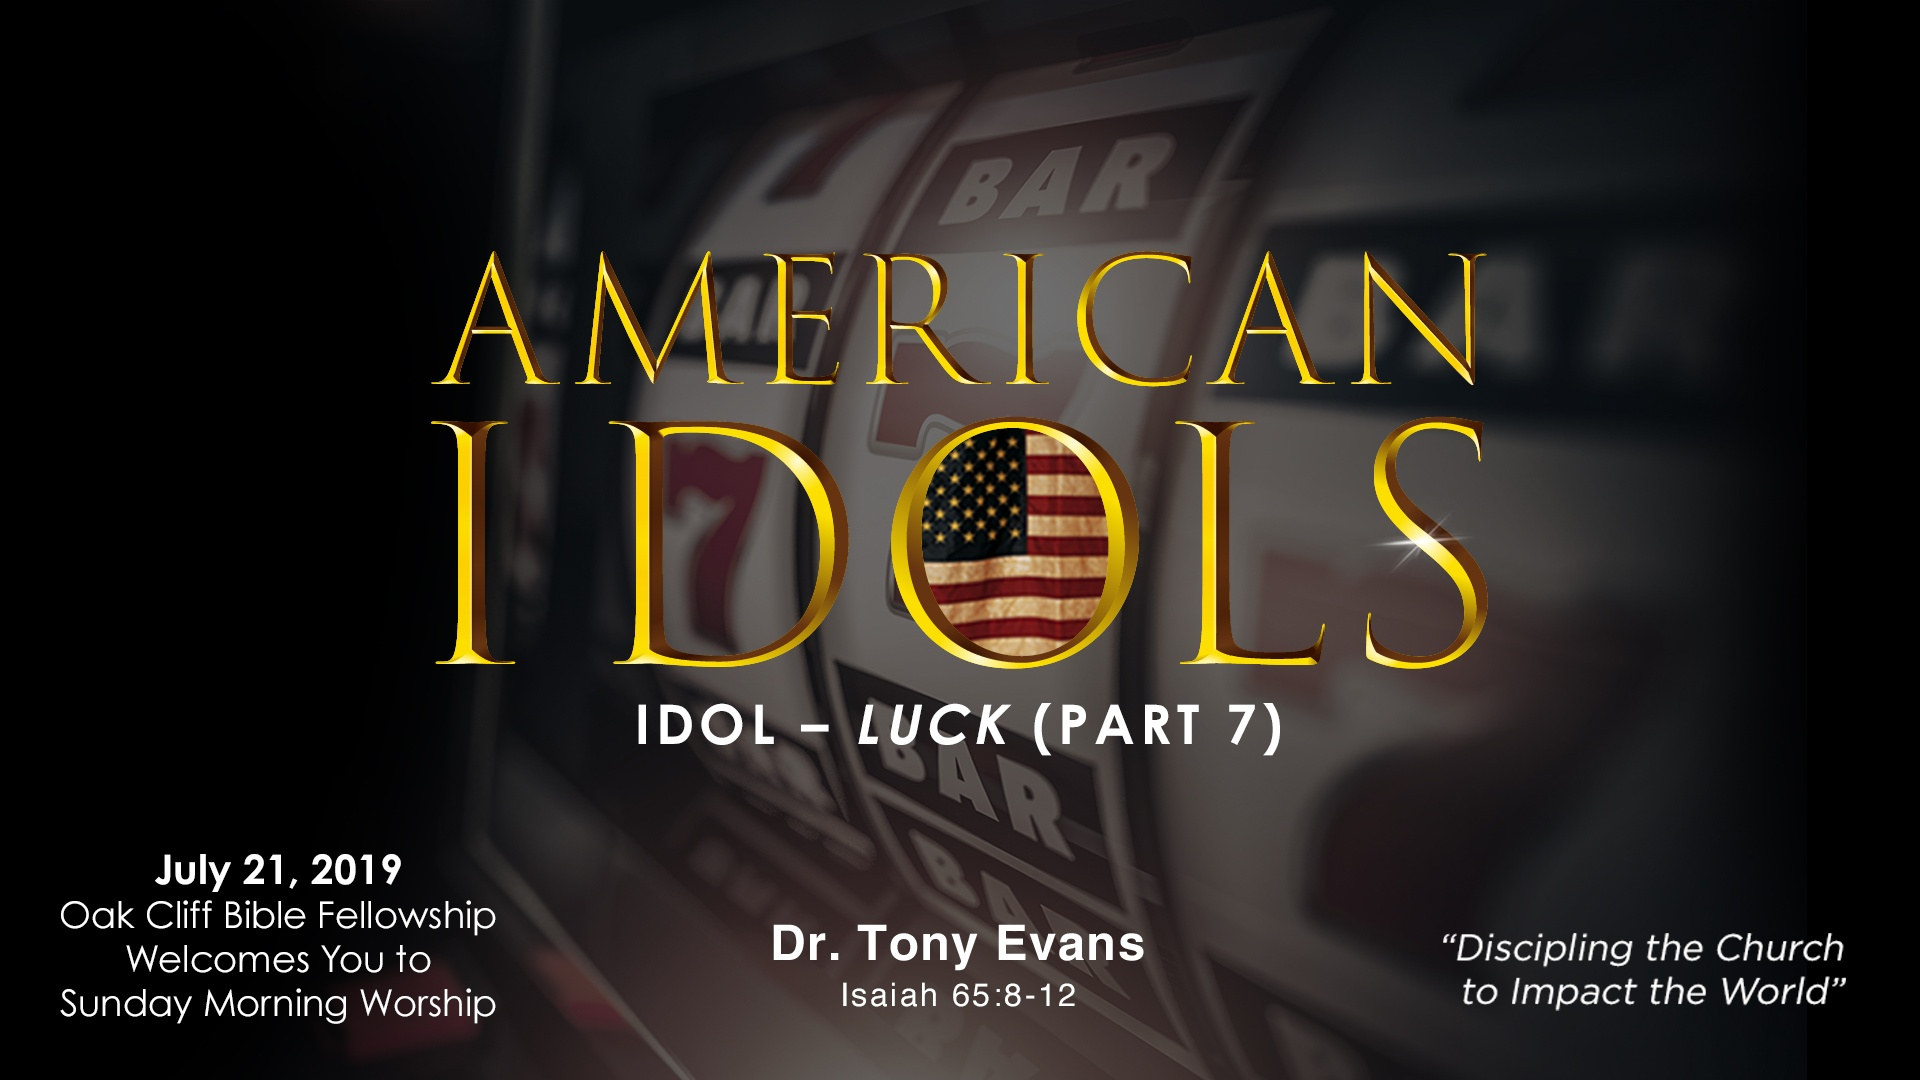 American Idols: Luck by Dr. Tony Evans